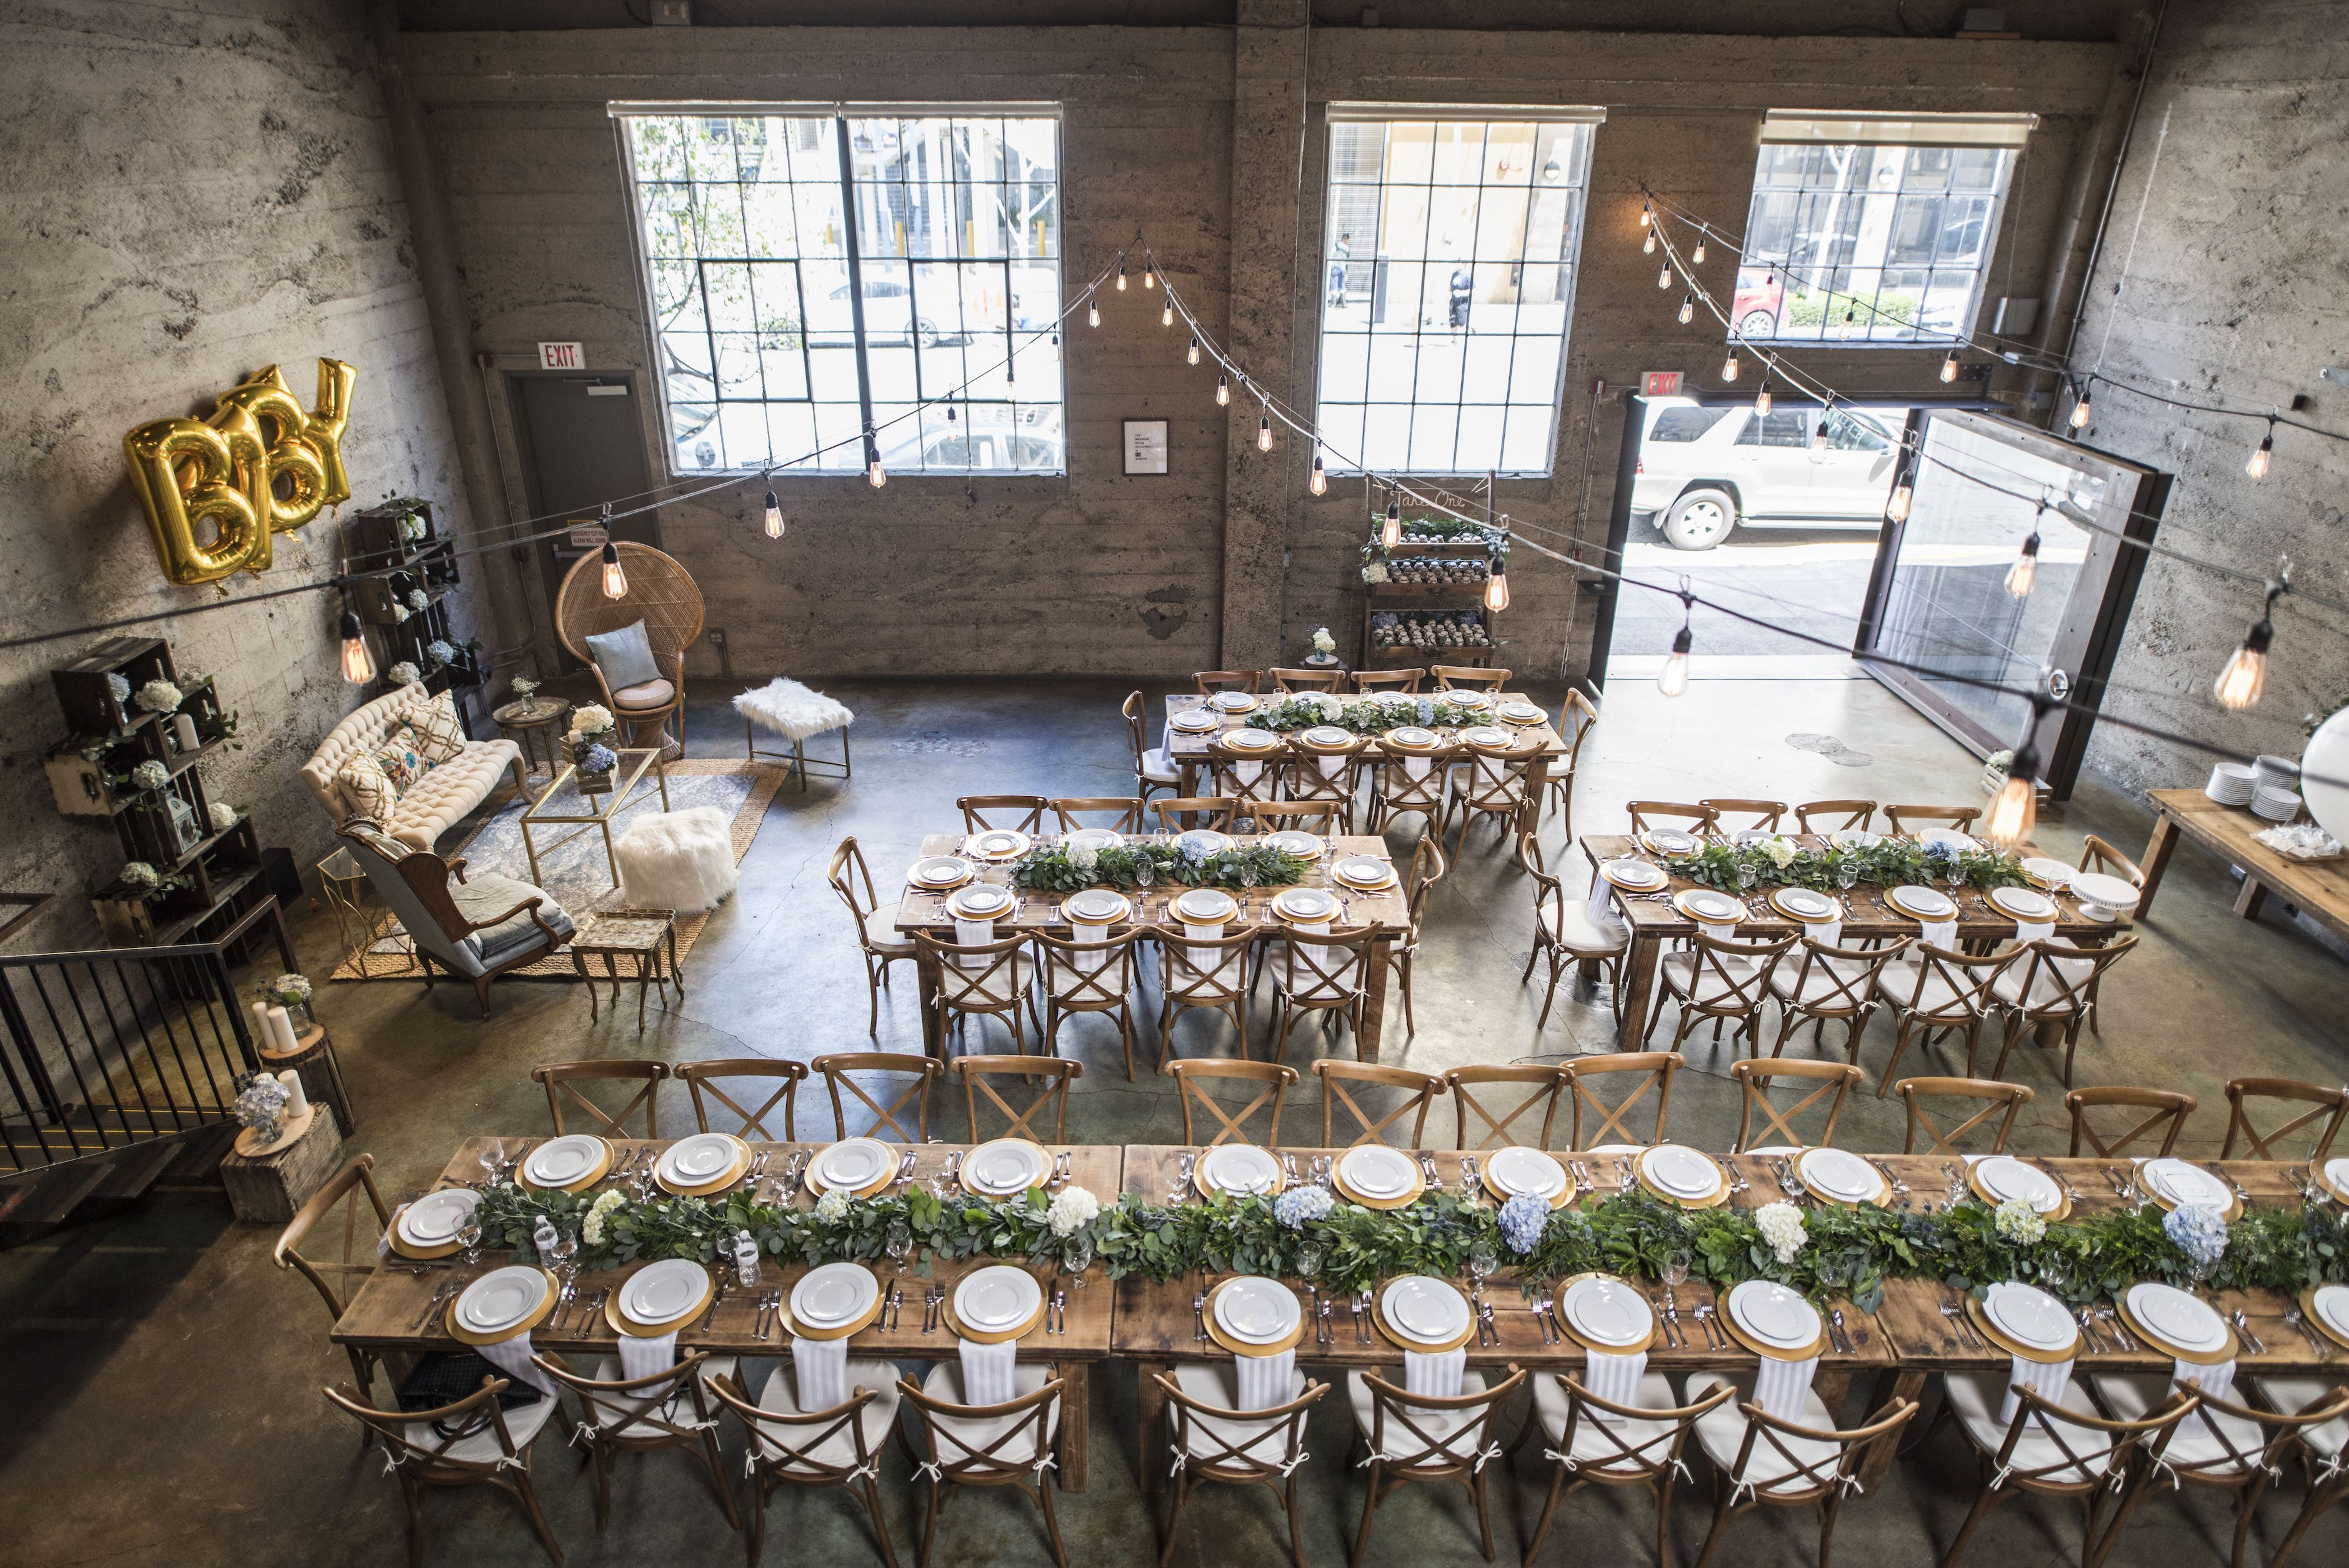 Farm tables and more san diego event rentals baby